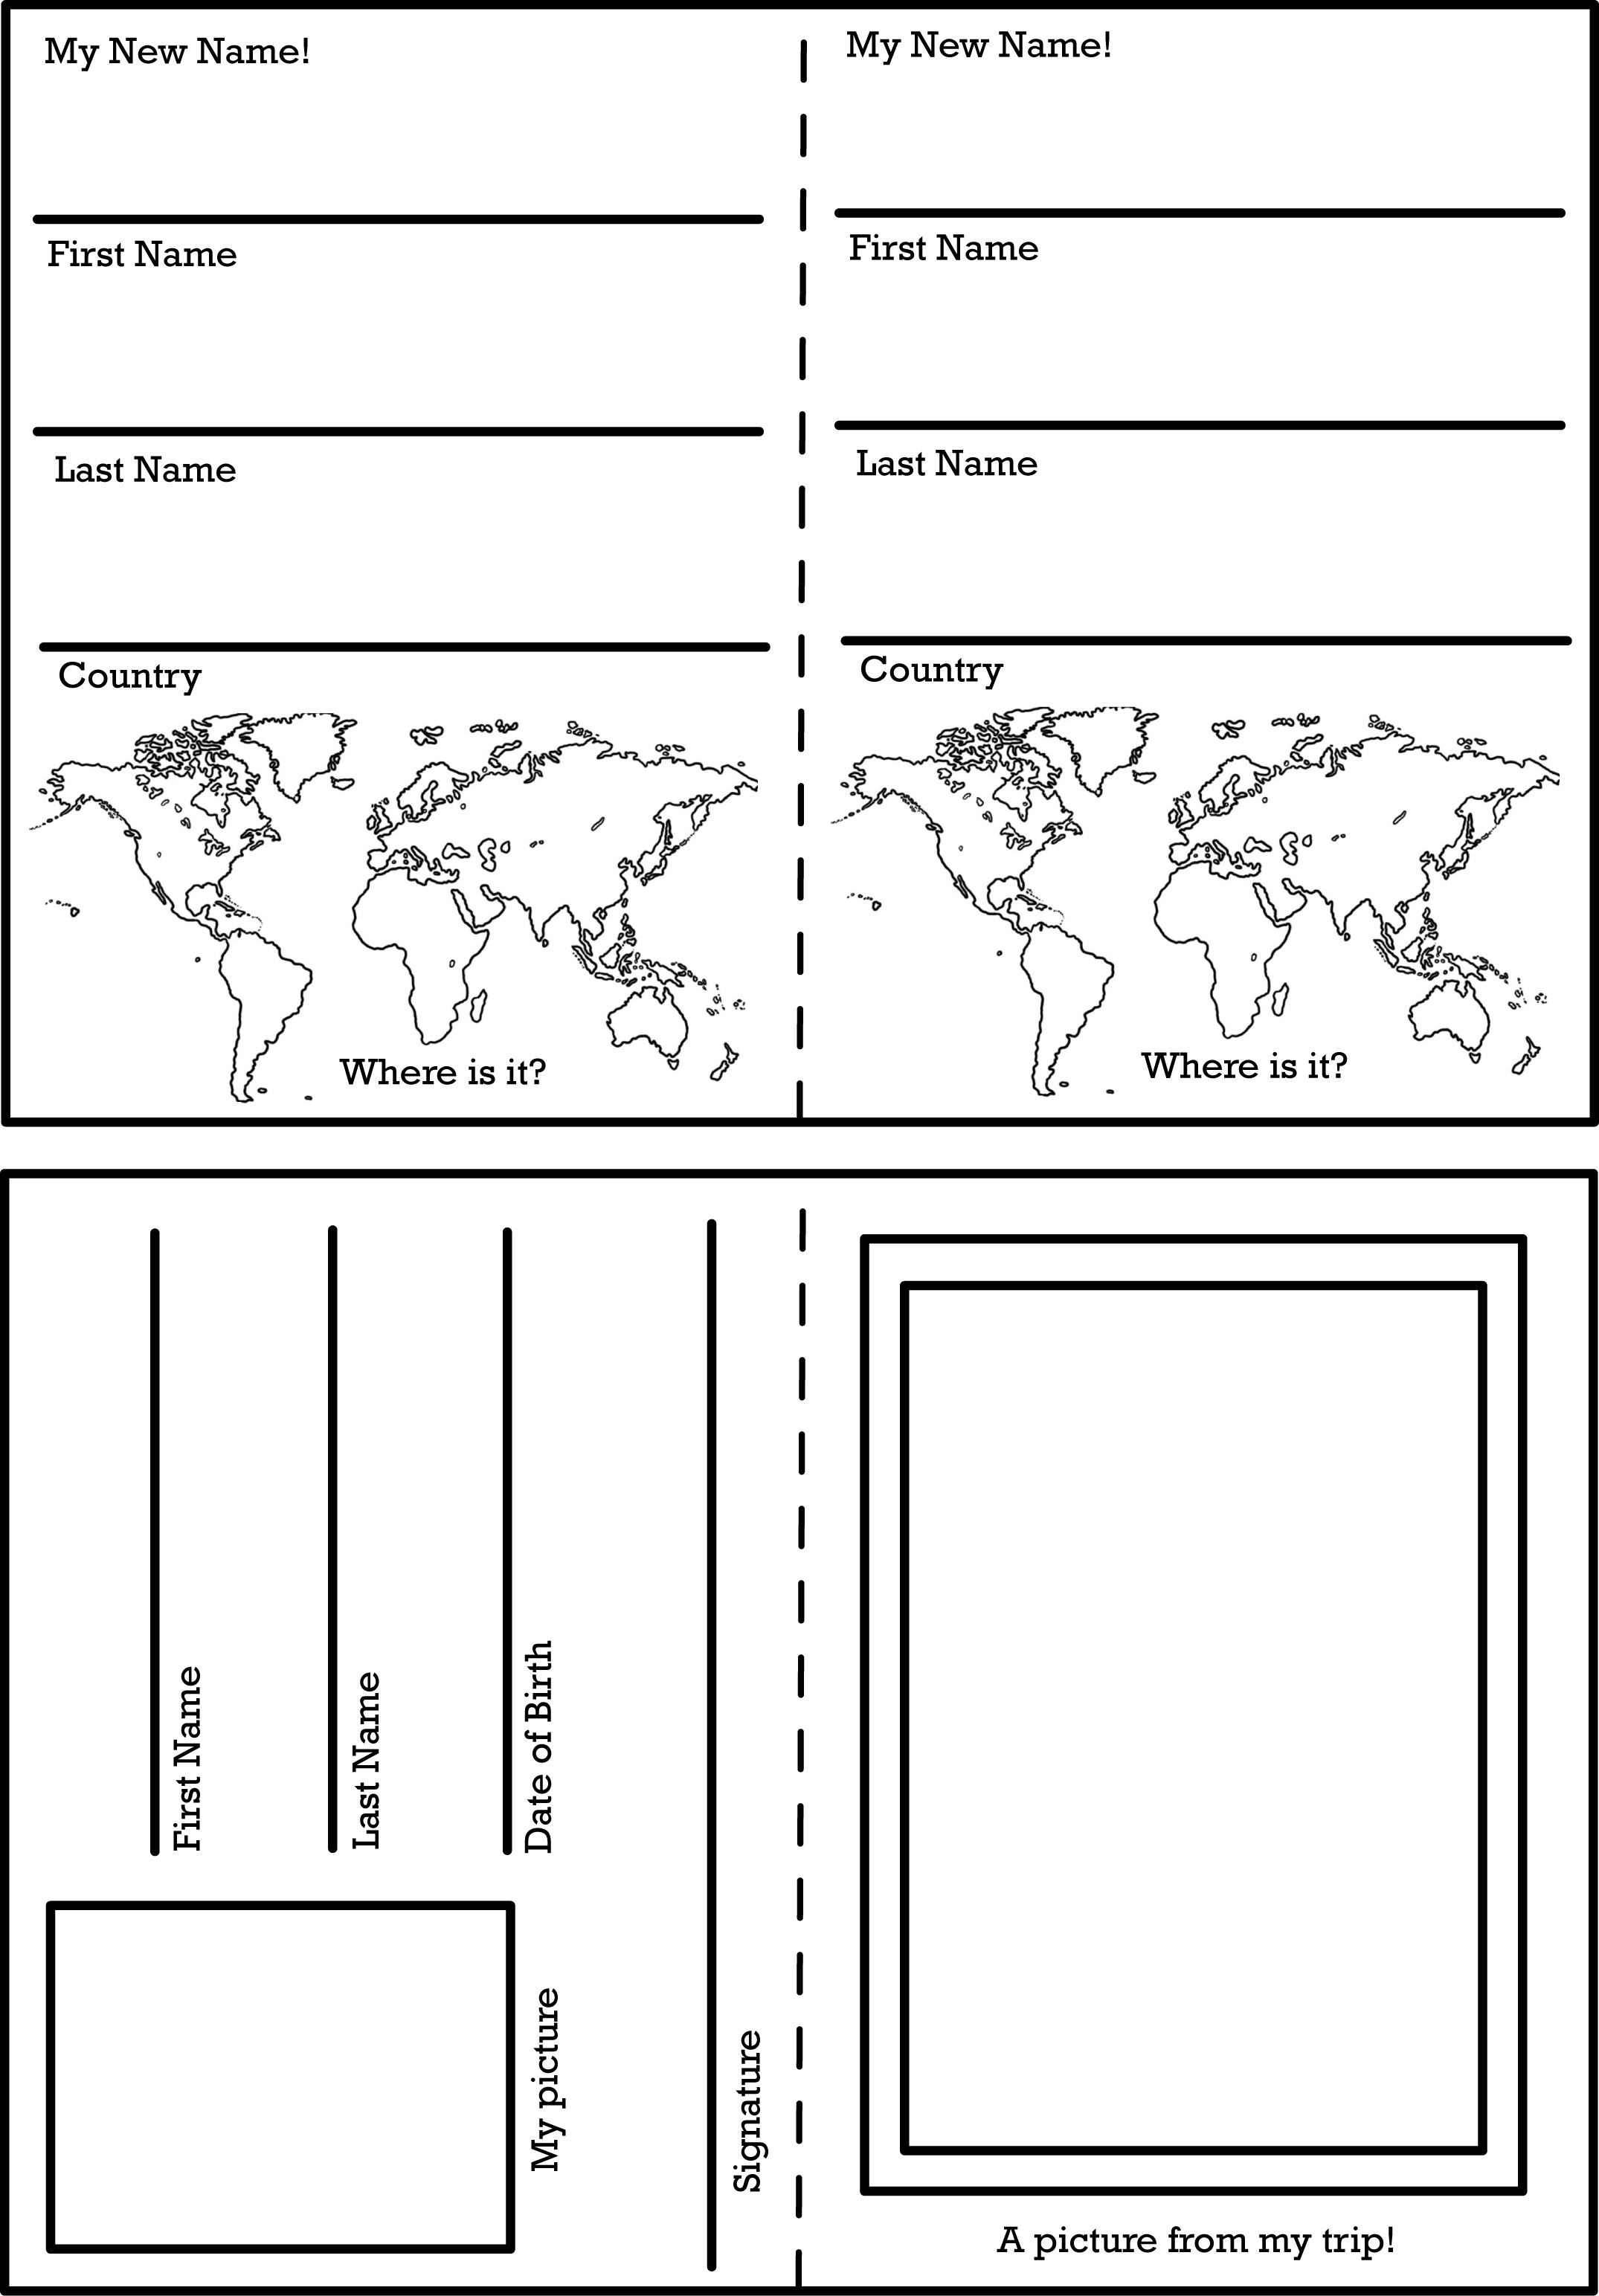 Activity Worksheets And Printables | The Change Your Name Store | Canada Food Guide Printable Worksheets